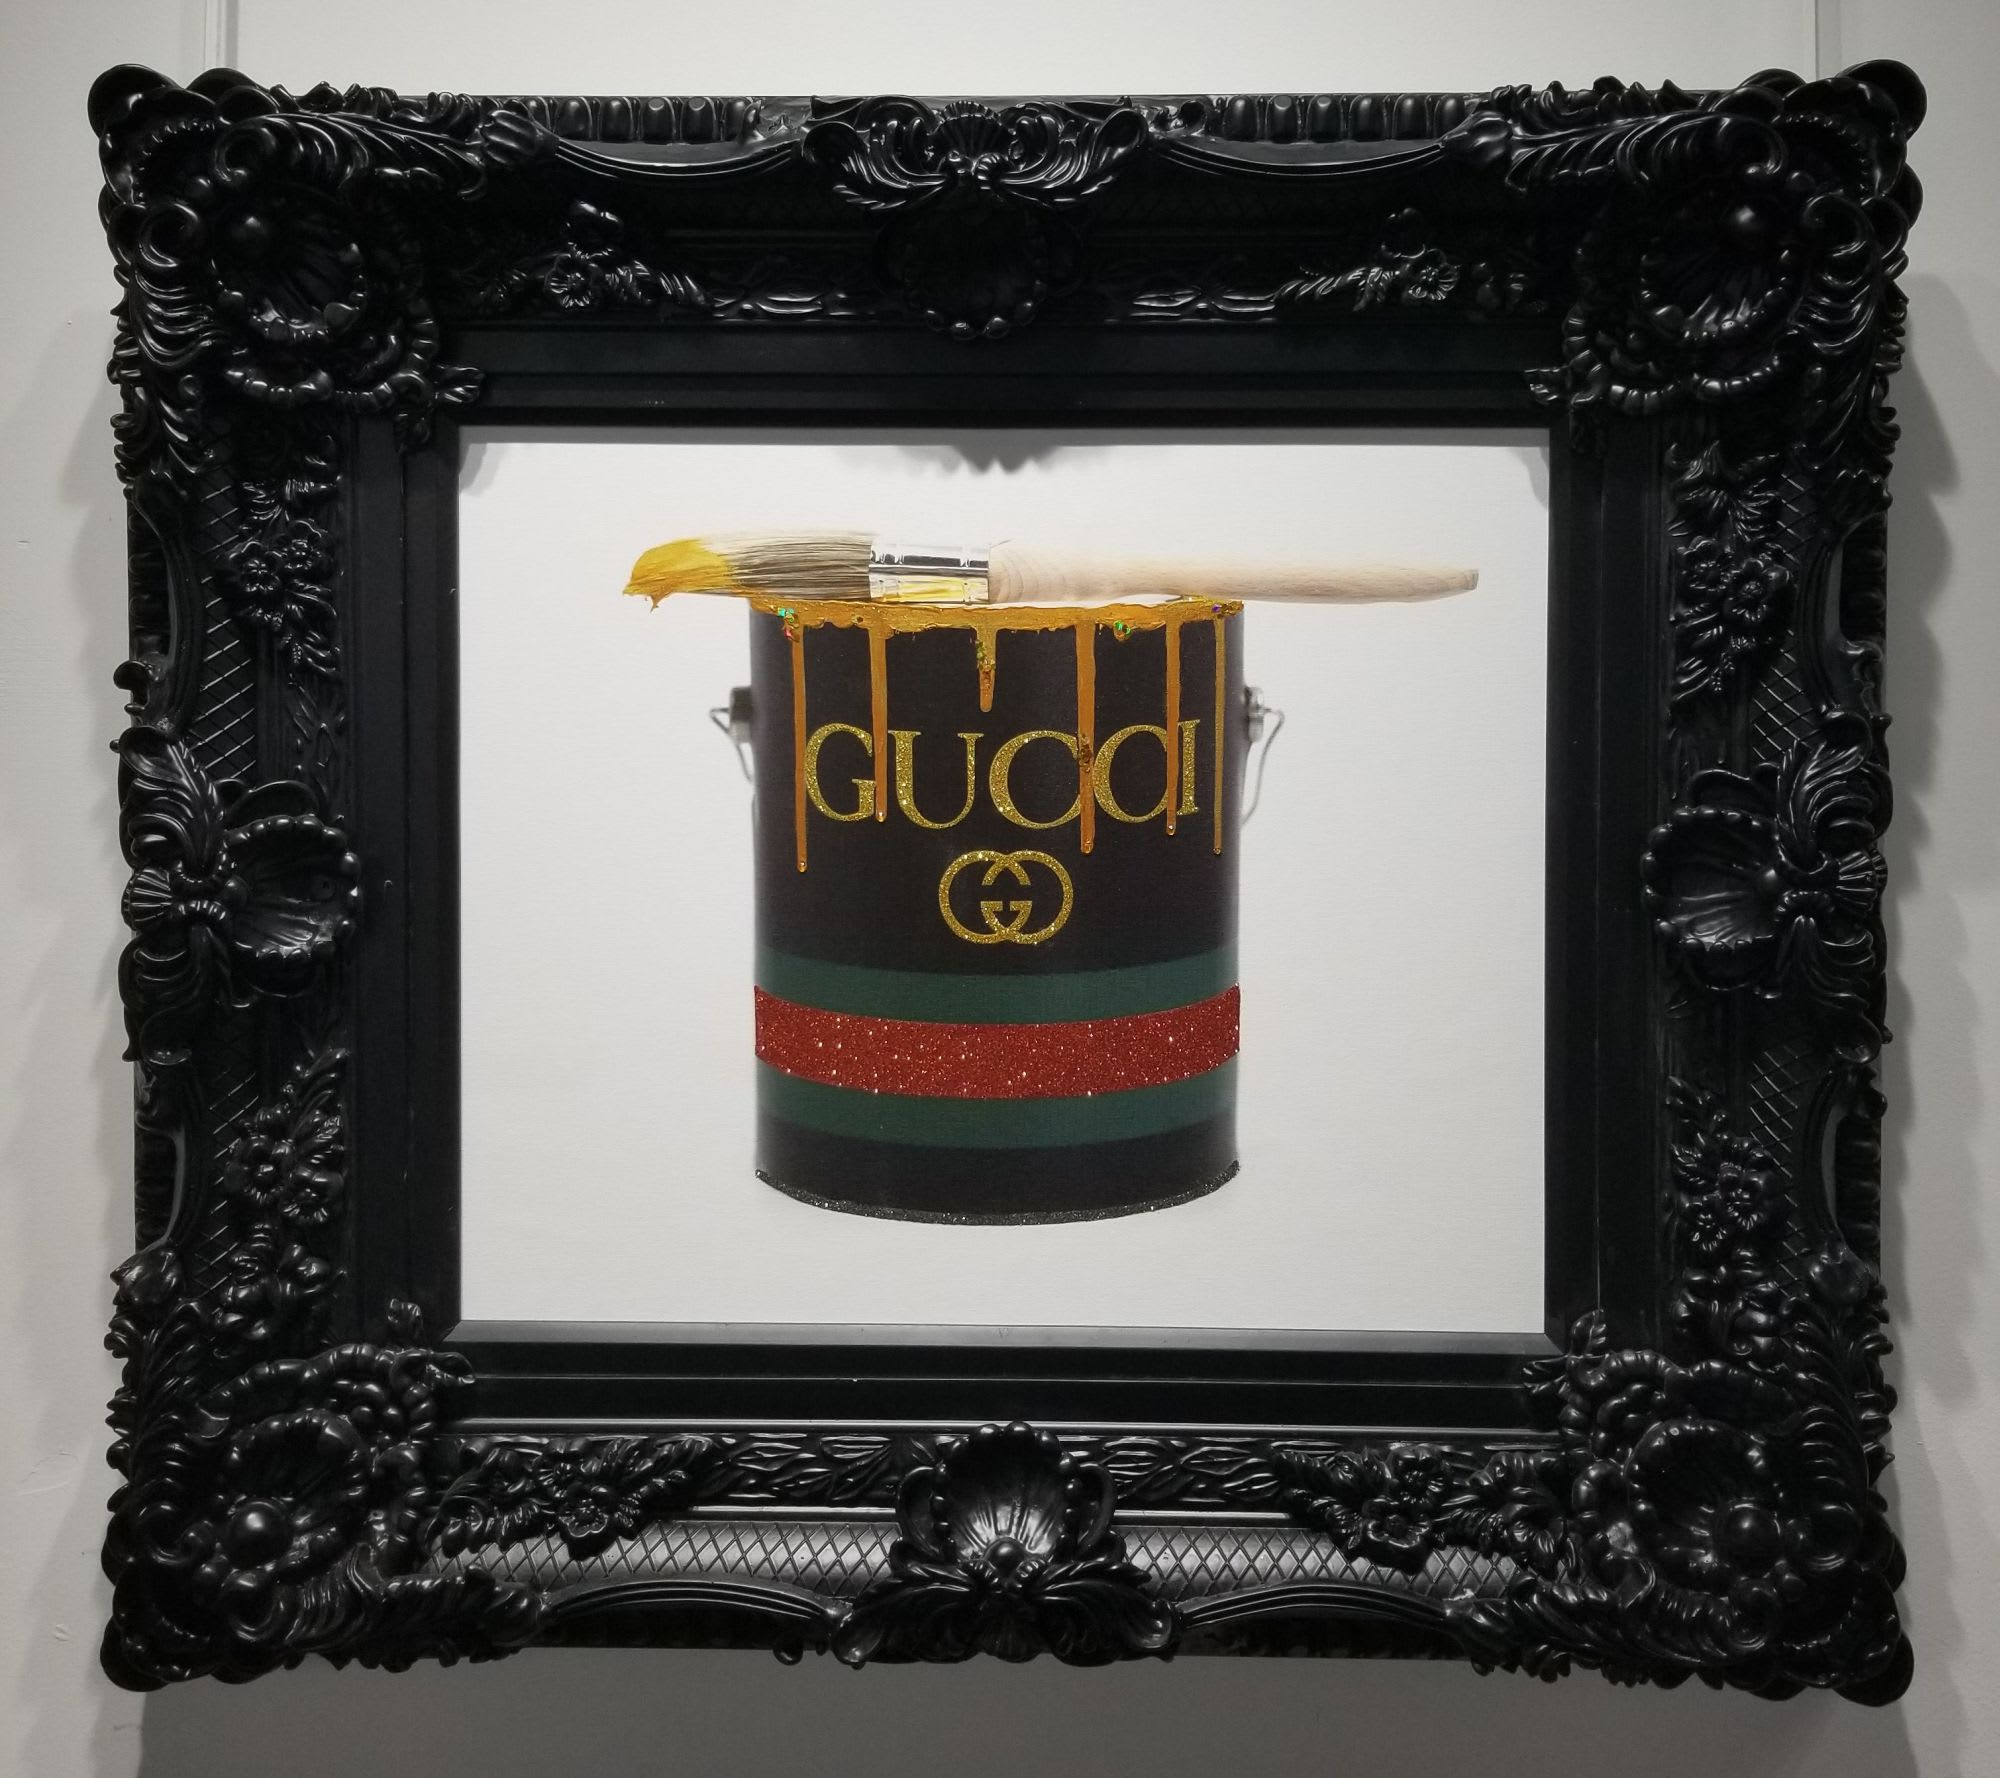 'Gucci Paint Can' by James Manderville at Gallery 133